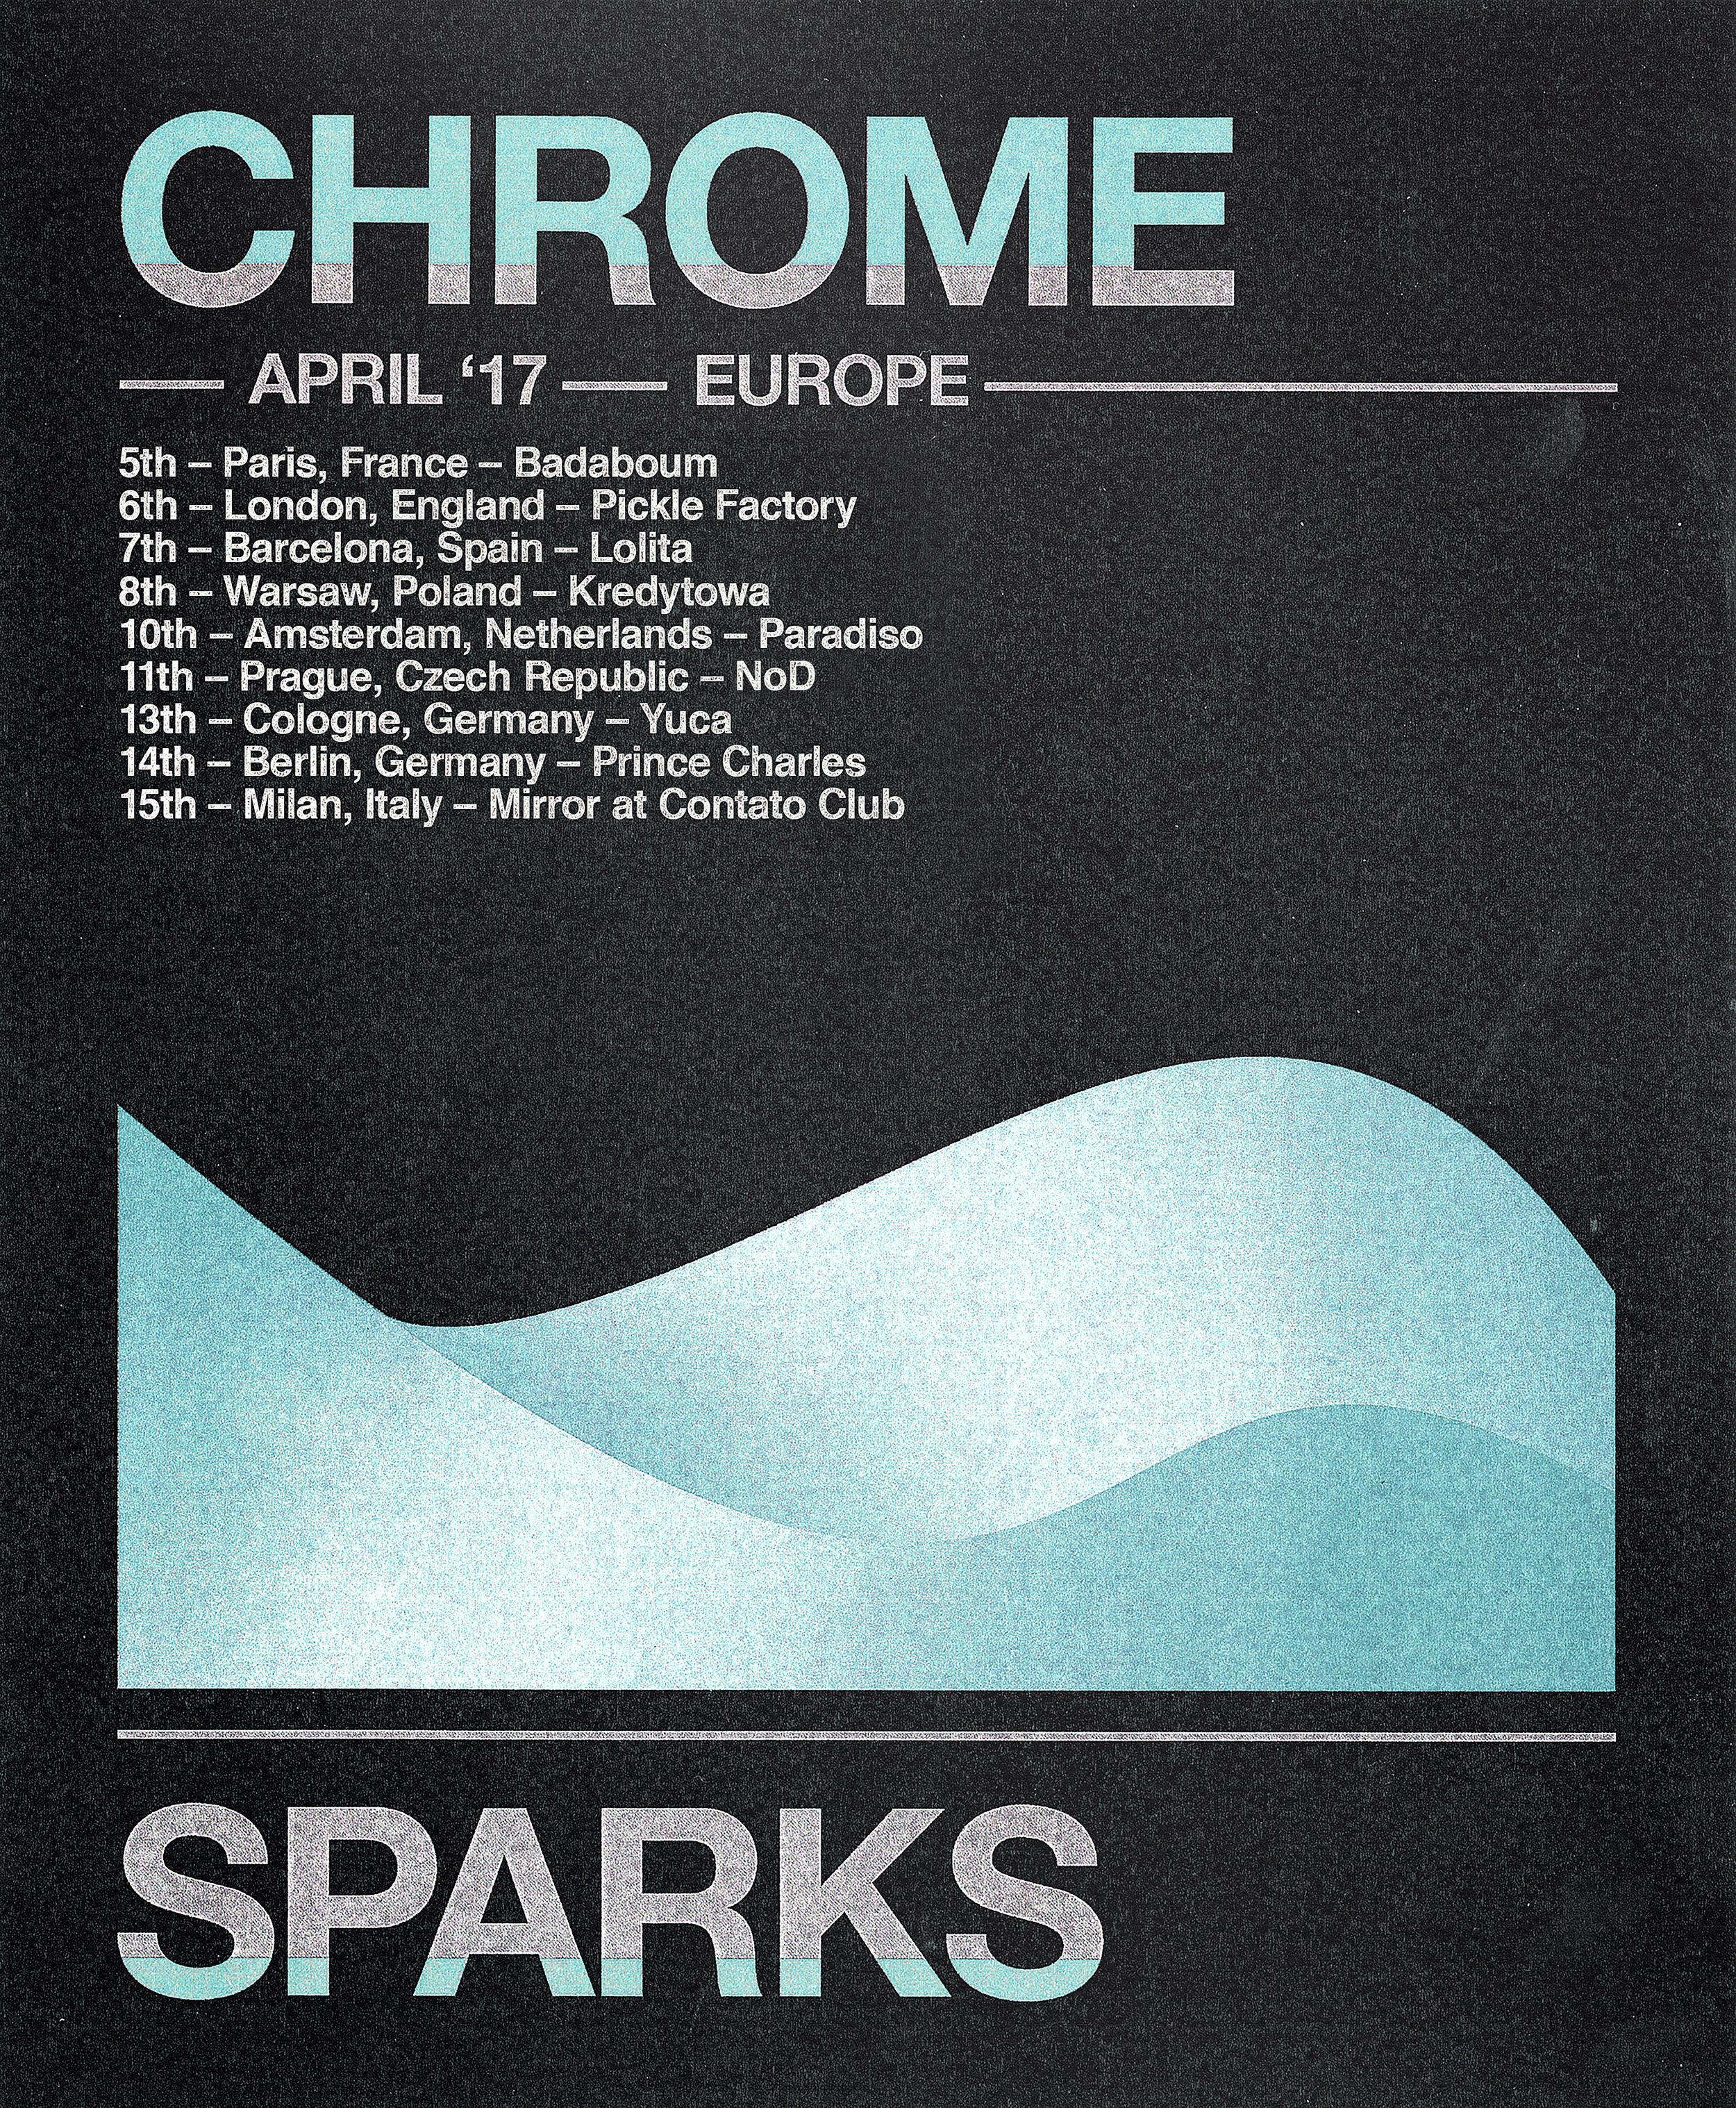 chrome-sparks-eu-17-web_2500.jpg